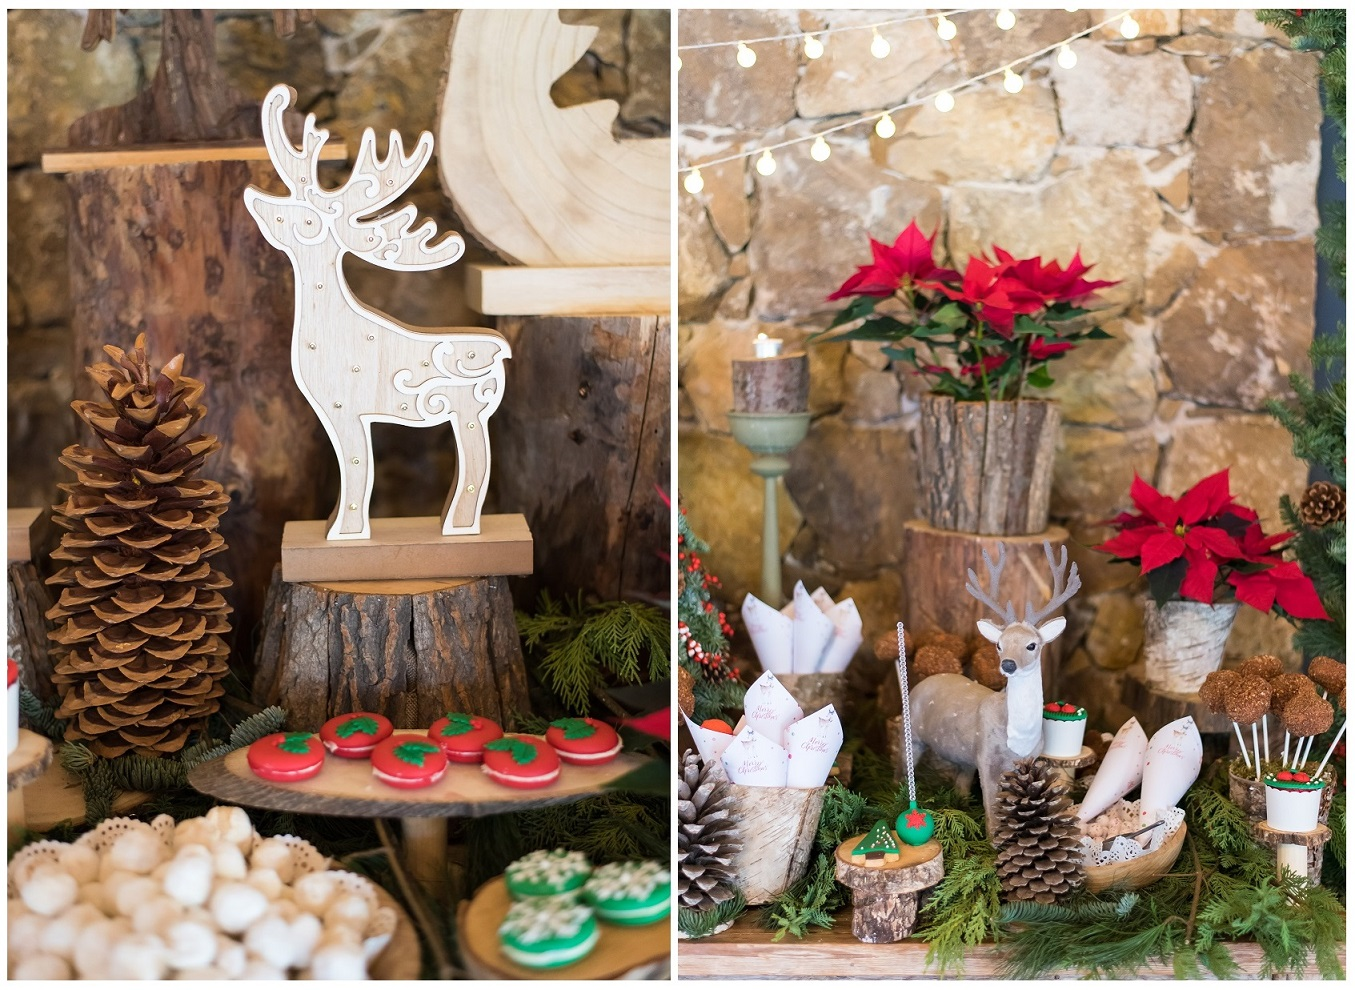 Festive Christening at Polo Club by Tsveta Christou Event Planner in Greece